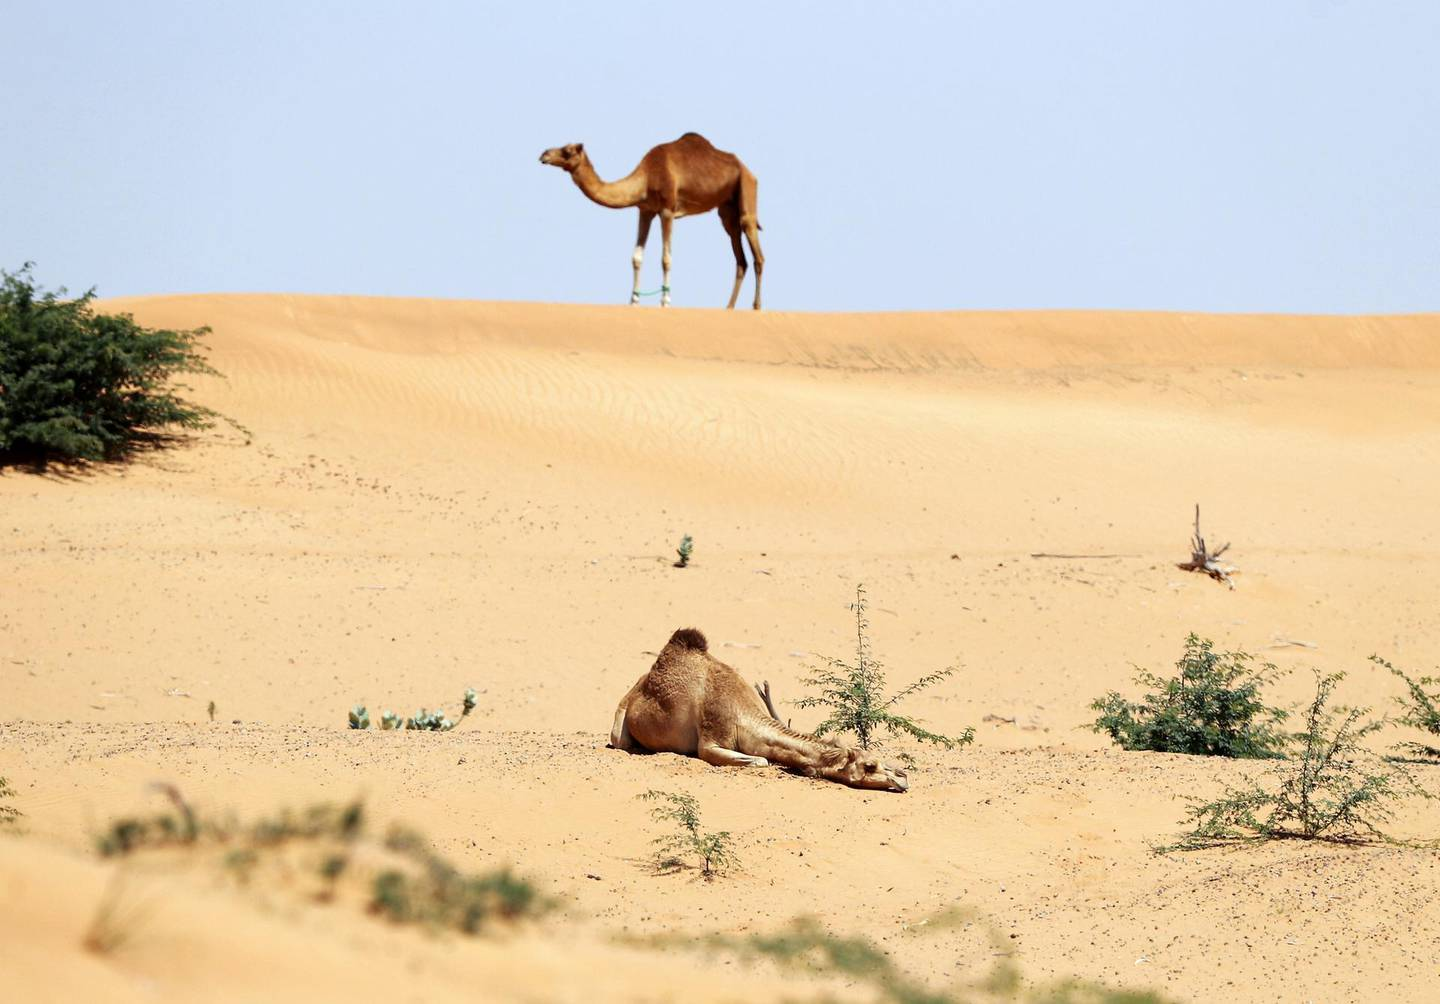 Umm Al Quwain, United Arab Emirates - Reporter: N/A: Standalone. A camel takes a rest during the hottest part of the day in the desert. Wednesday, March 11th, 2020. Umm Al Quwain. Chris Whiteoak / The National